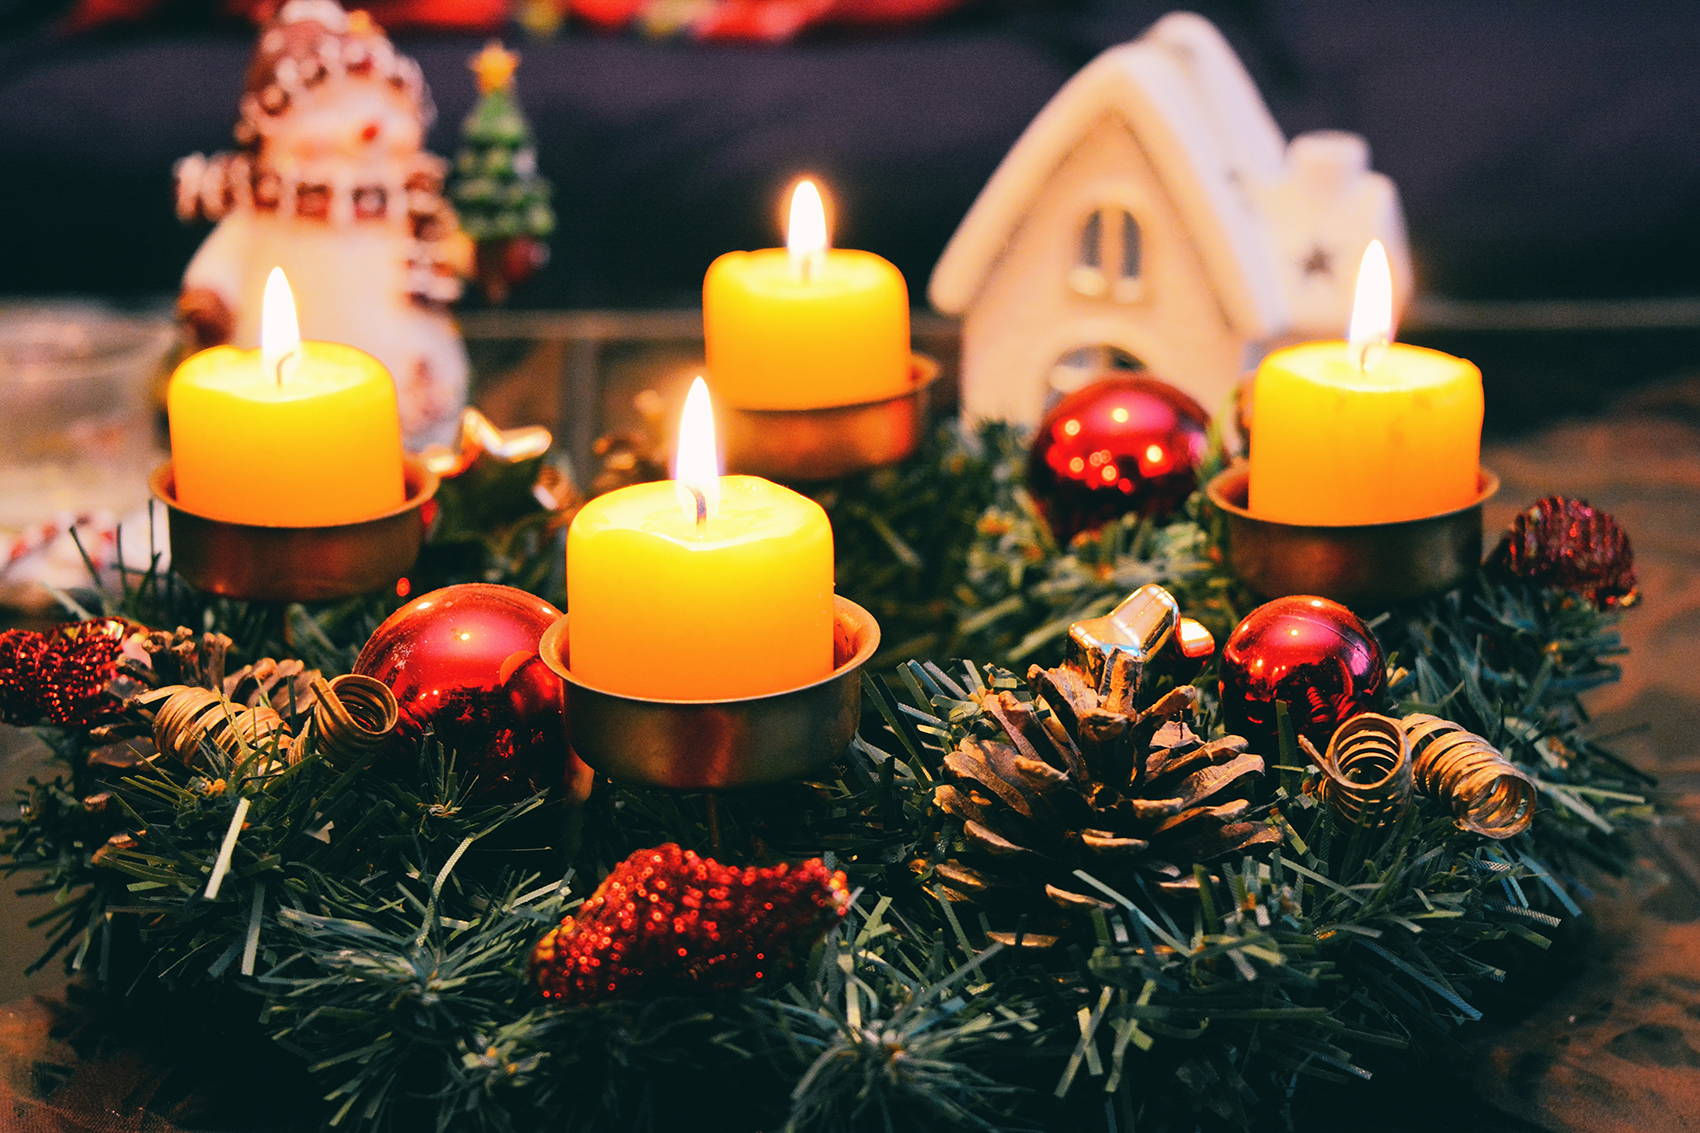 10 Ways to Cozy Up Your Home for the Holidays